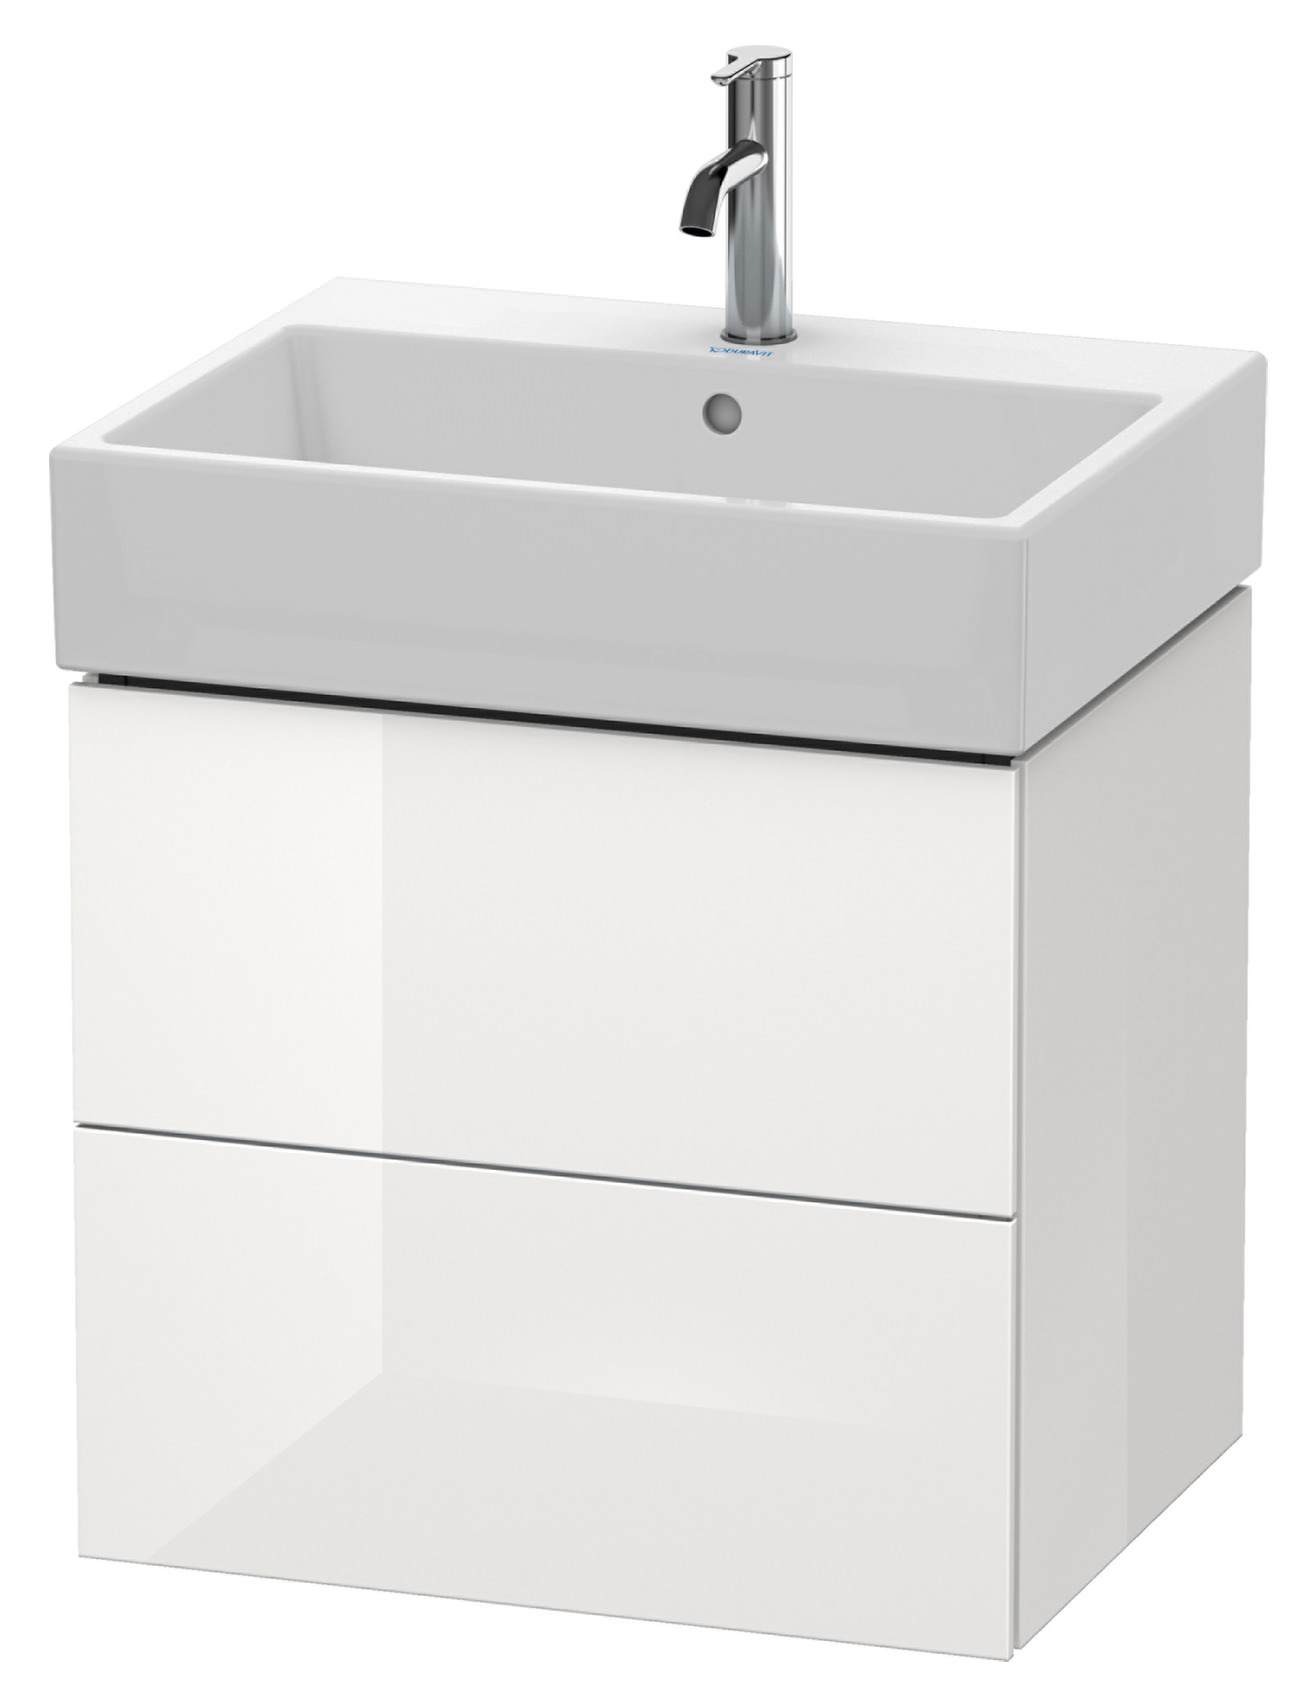 duravit l cube 584mm 2 drawer vanity unit with vero air basin. Black Bedroom Furniture Sets. Home Design Ideas